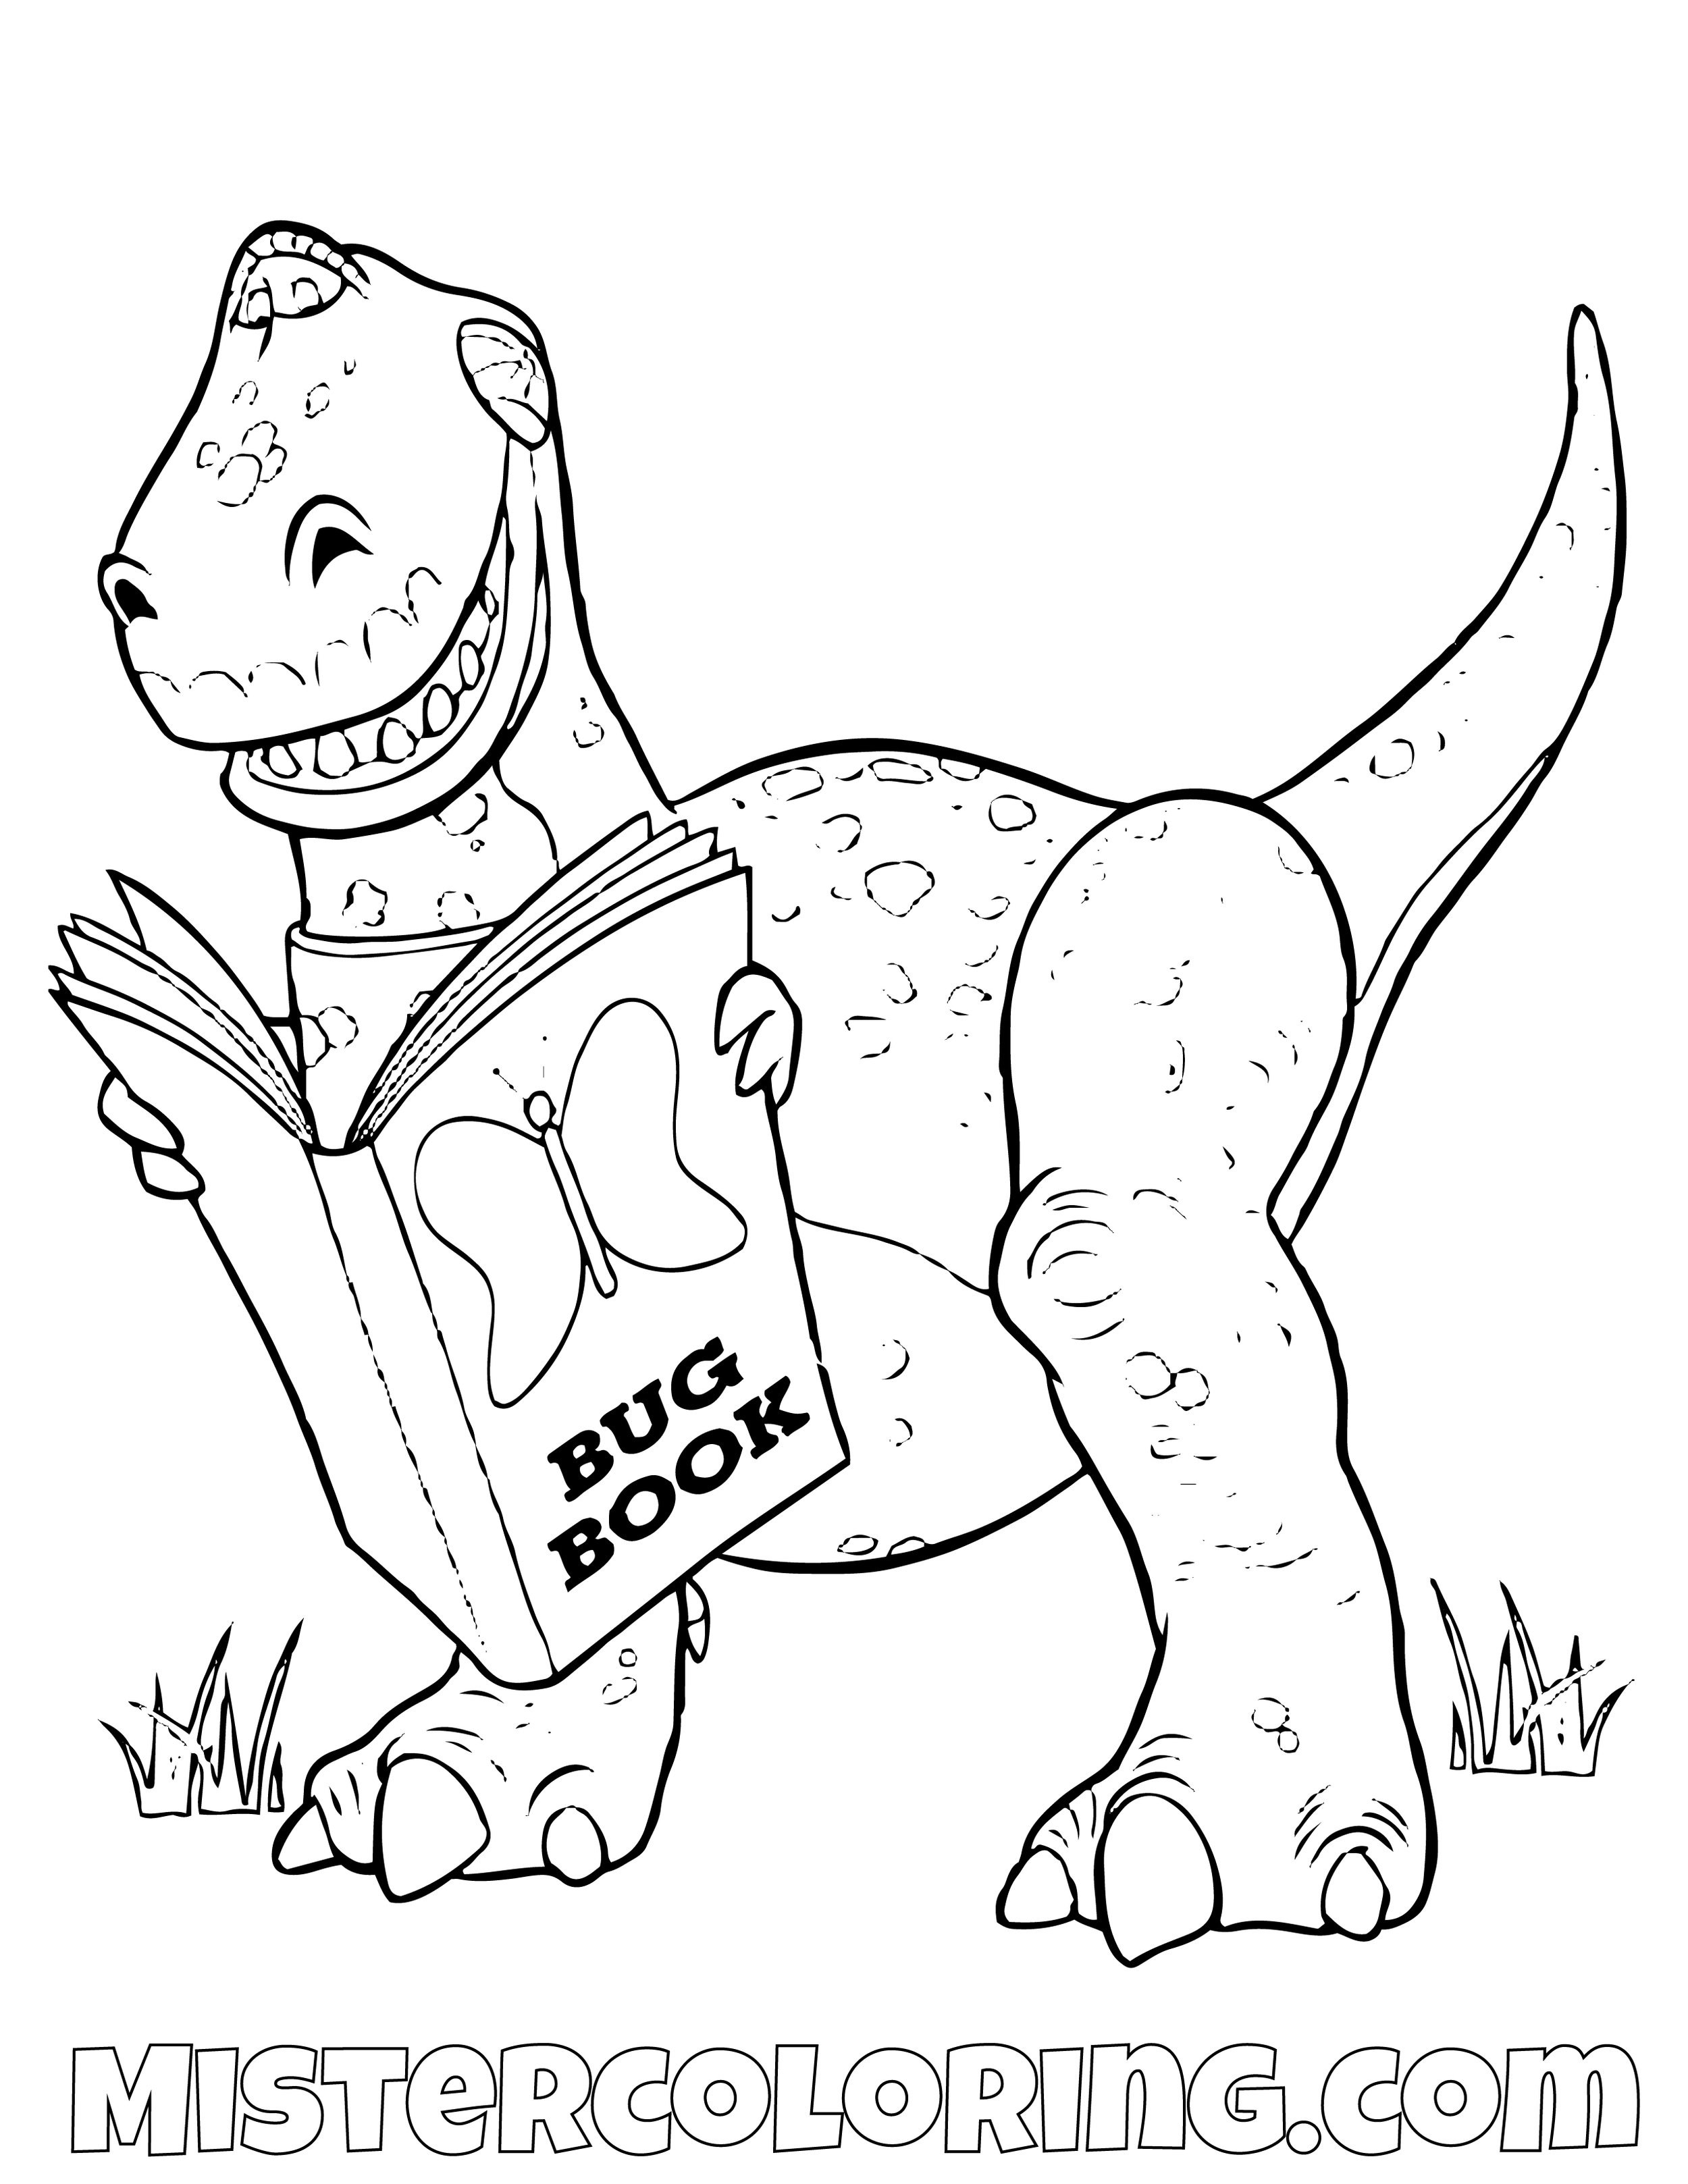 Rex Reading Bug Book Toy Story Coloring Page